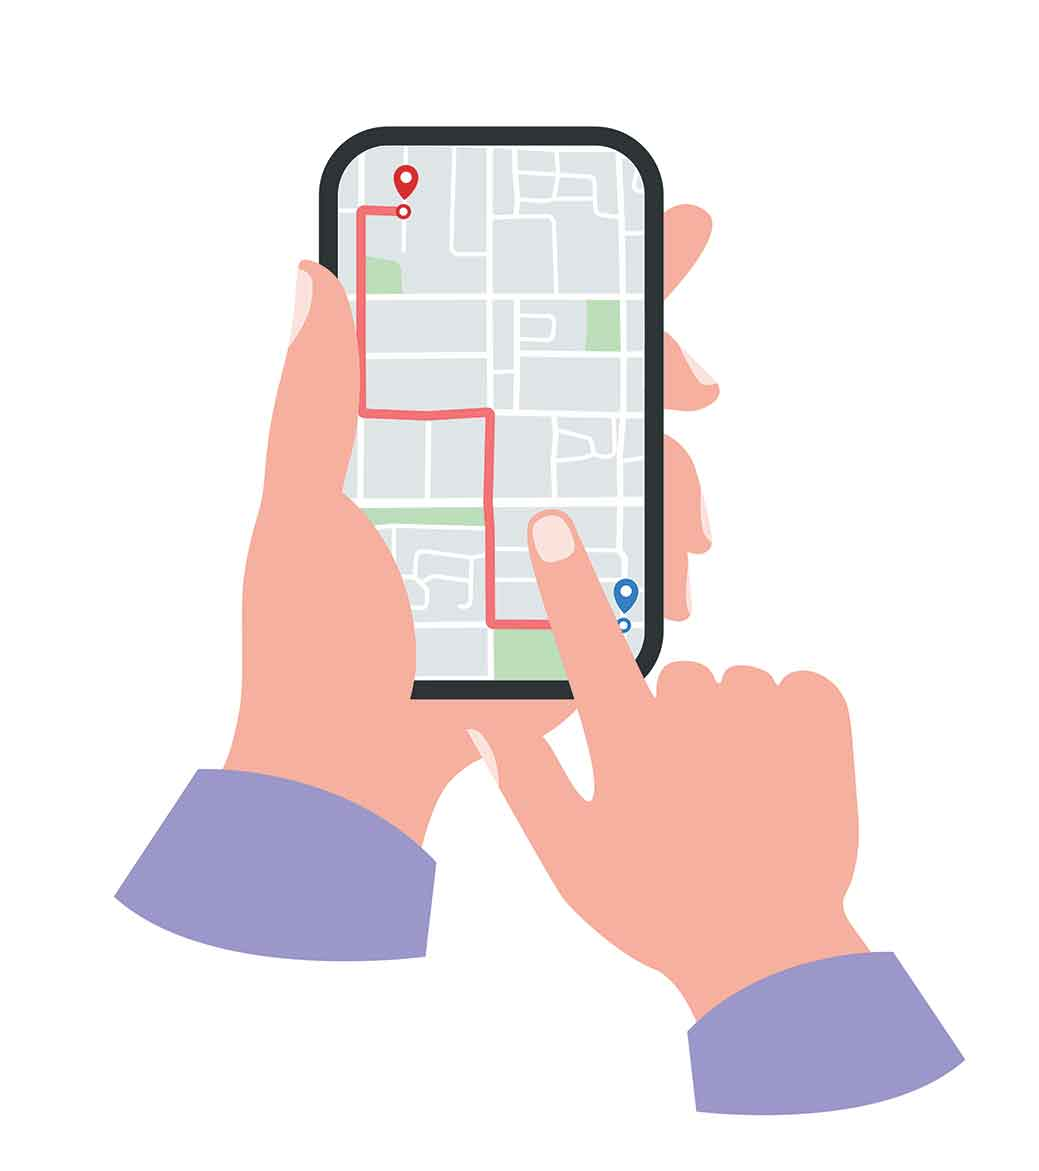 Hands holding iphone with directions